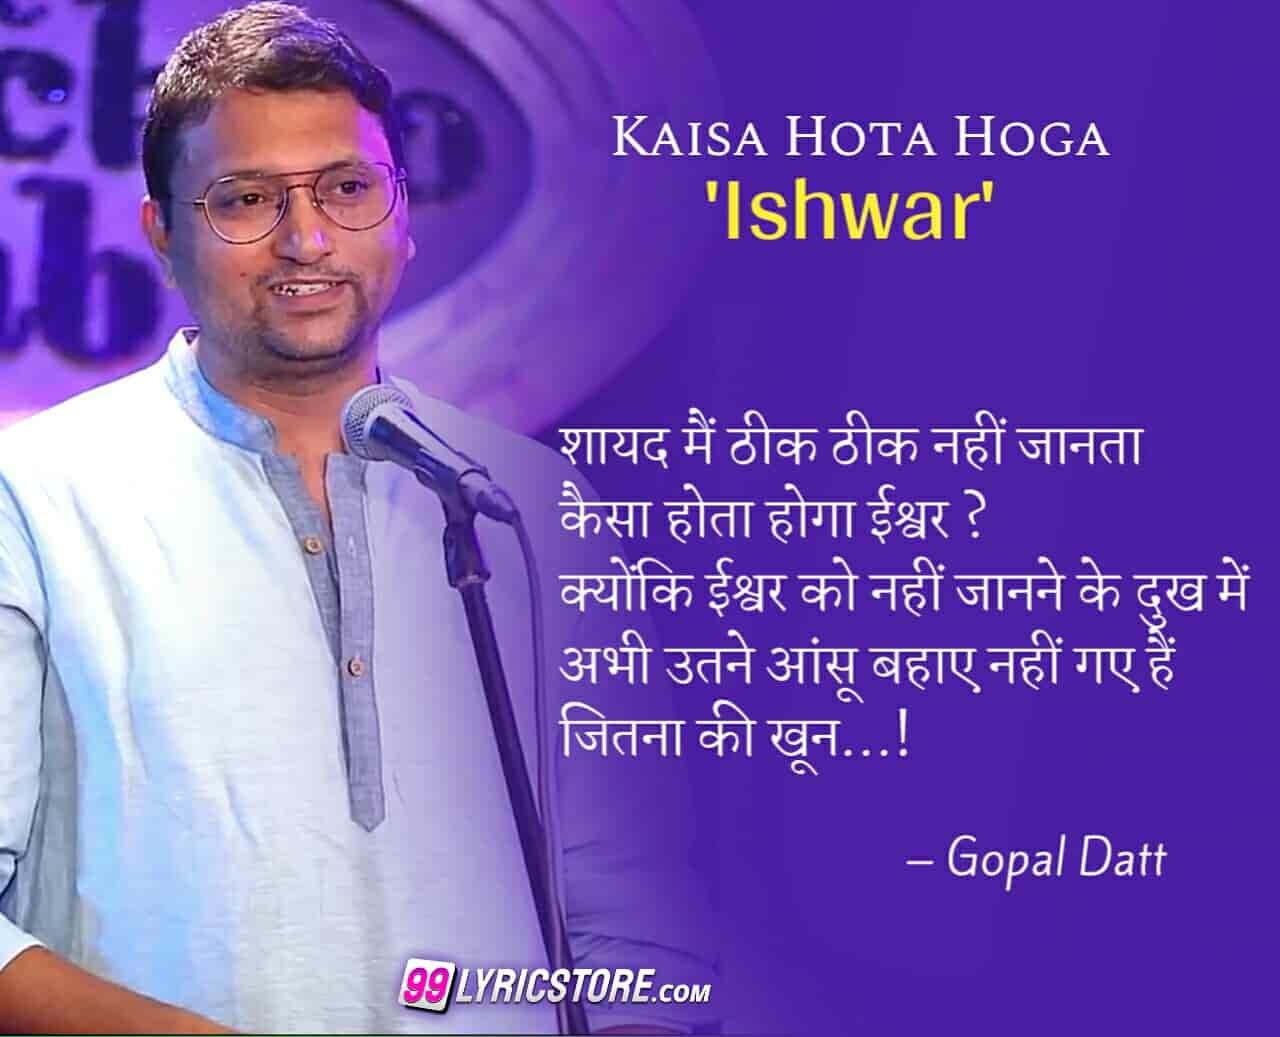 This beautiful Poem 'Kaisa Hota Hoga Ishwar' has written and performed by Gopal Datt. Shots at Cuckoo Club Bandra.